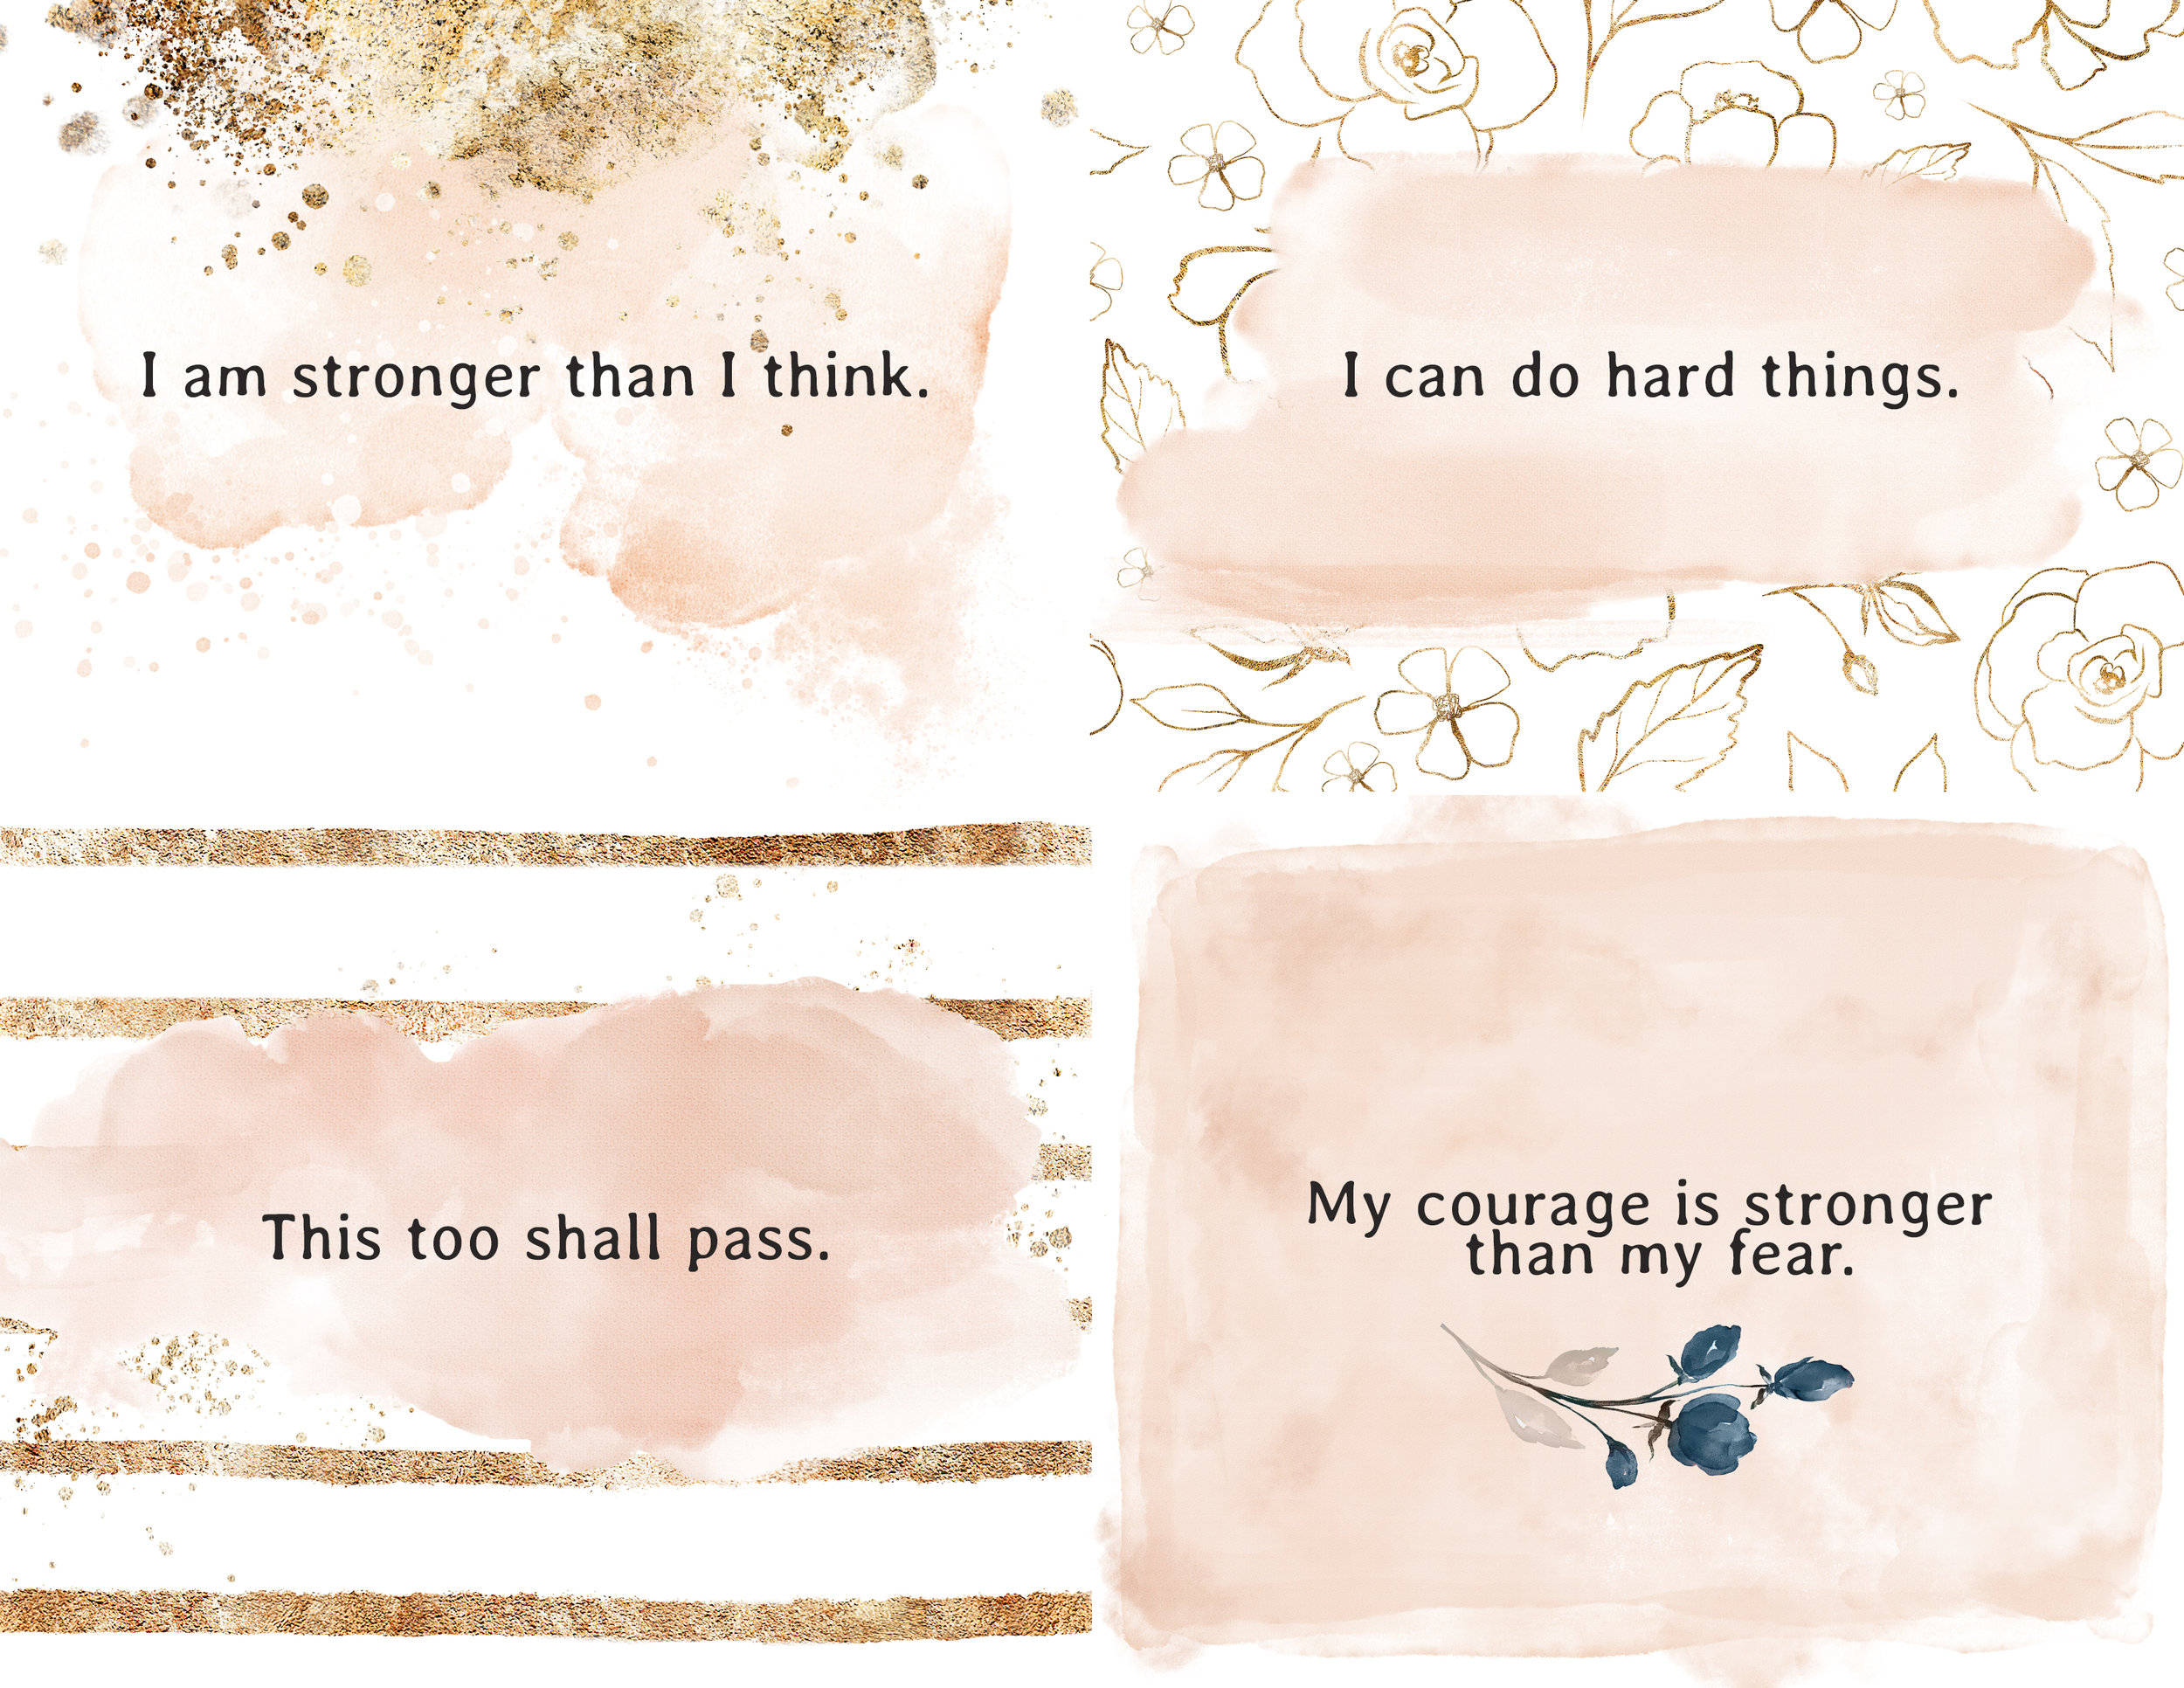 Affirmations for labor and childbirth, created by Brittney Hogue Birth Photographer of Central IL